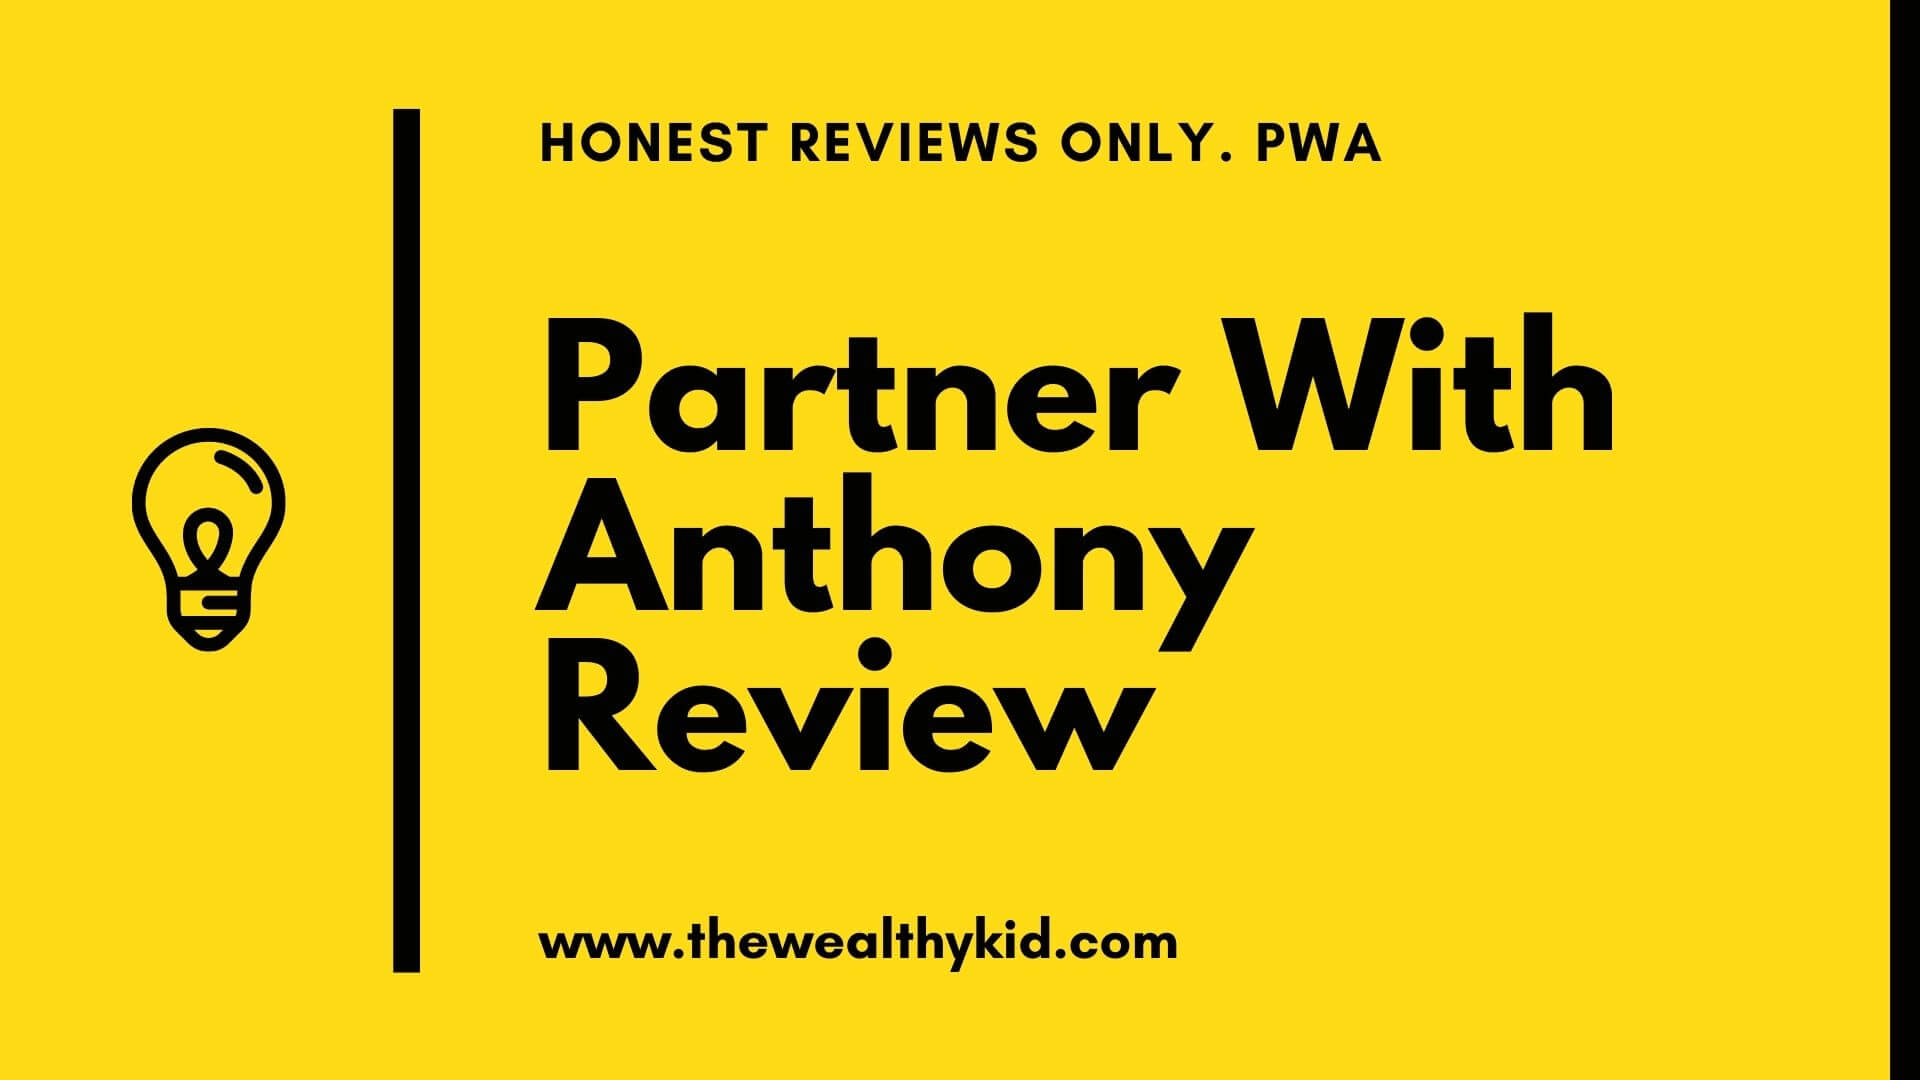 What is Partner with Anthony about?